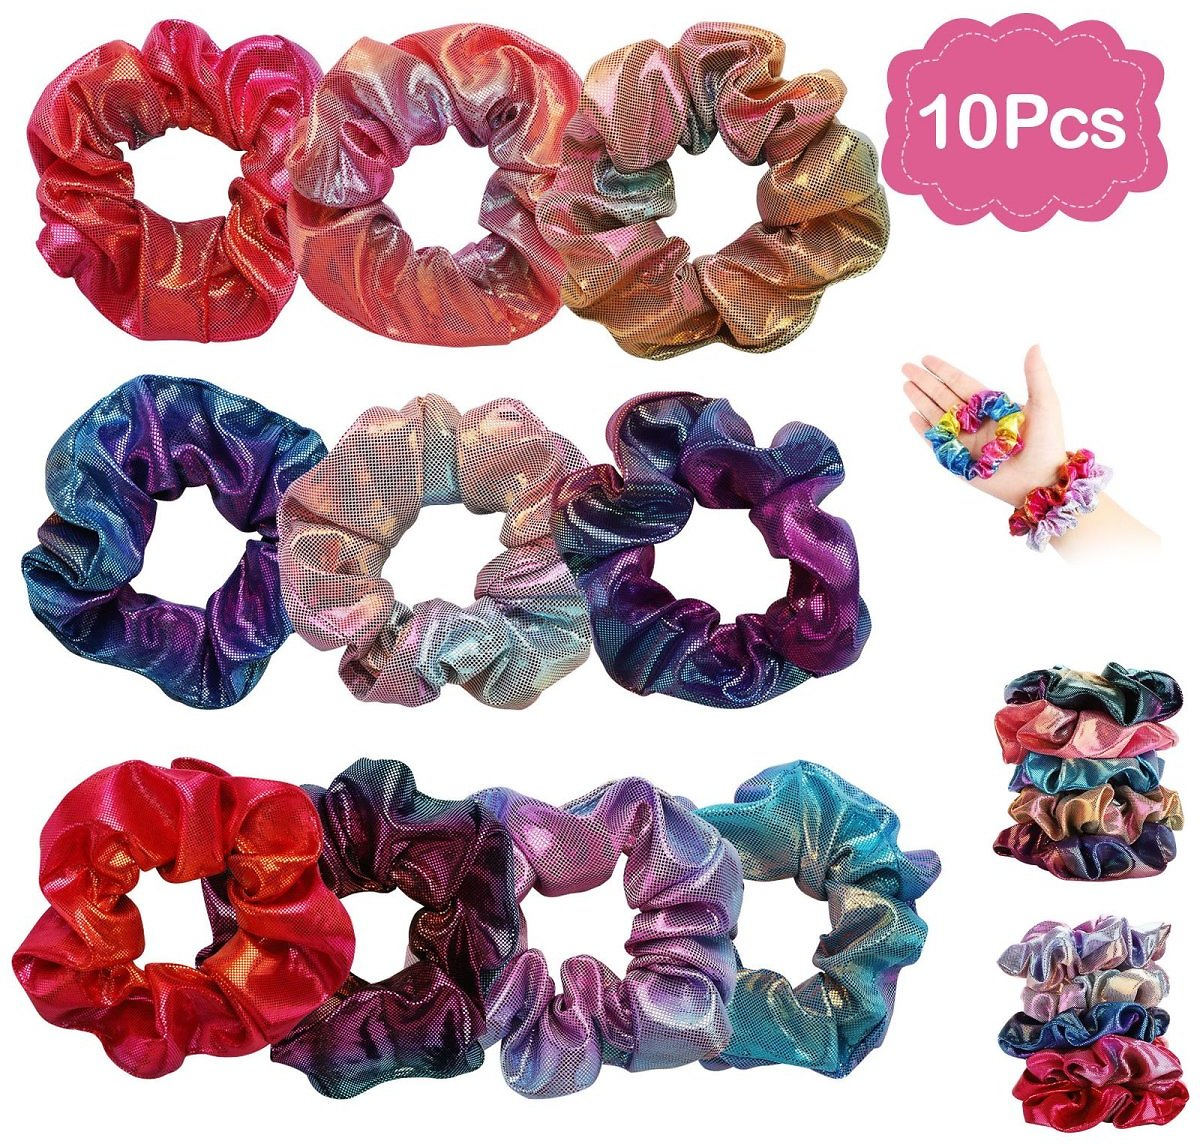 10Pcs Hair Scrunchies Velvet,Chiffon,Satin Elastic Hair Bands Scrunchie Bobbles Soft Hair Ties Ropes Ponytail Holder No Hurt, So